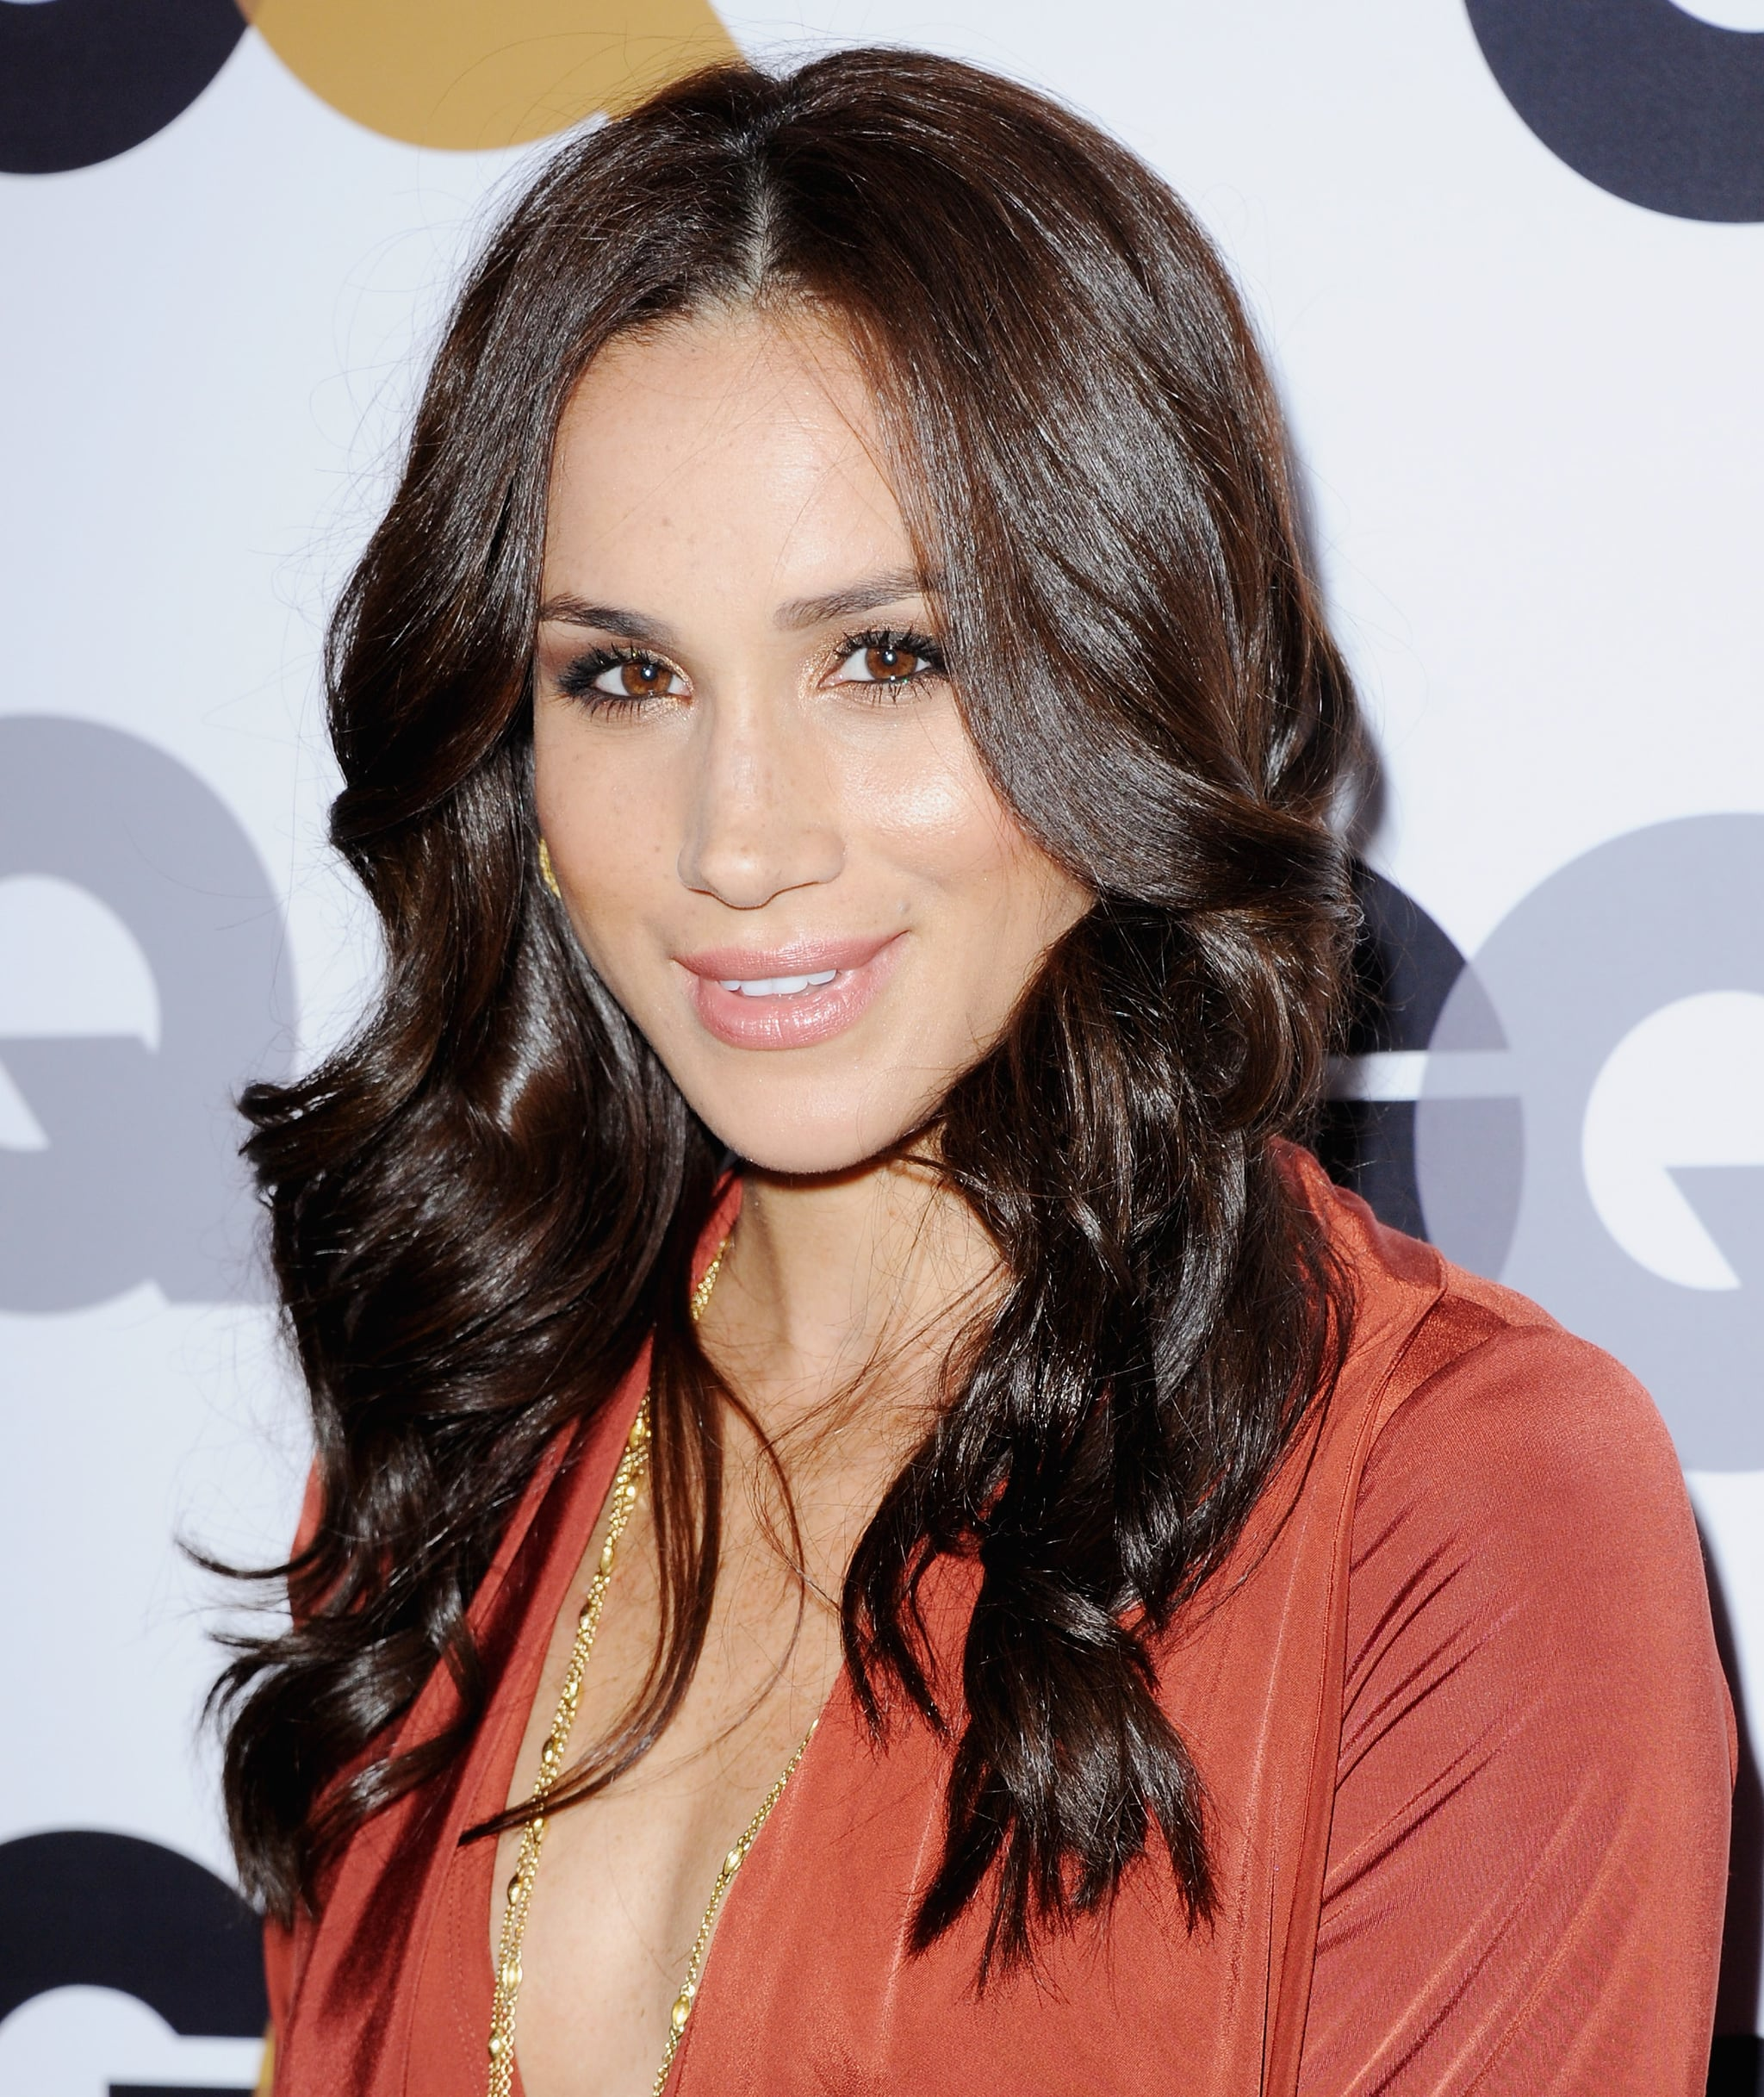 LOS ANGELES, CA - NOVEMBER 13:  Actress Meghan Markle arrives at GQ Men Of The Year Party at Chateau Marmont on November 13, 2012 in Los Angeles, California.  (Photo by Jon Kopaloff/FilmMagic)